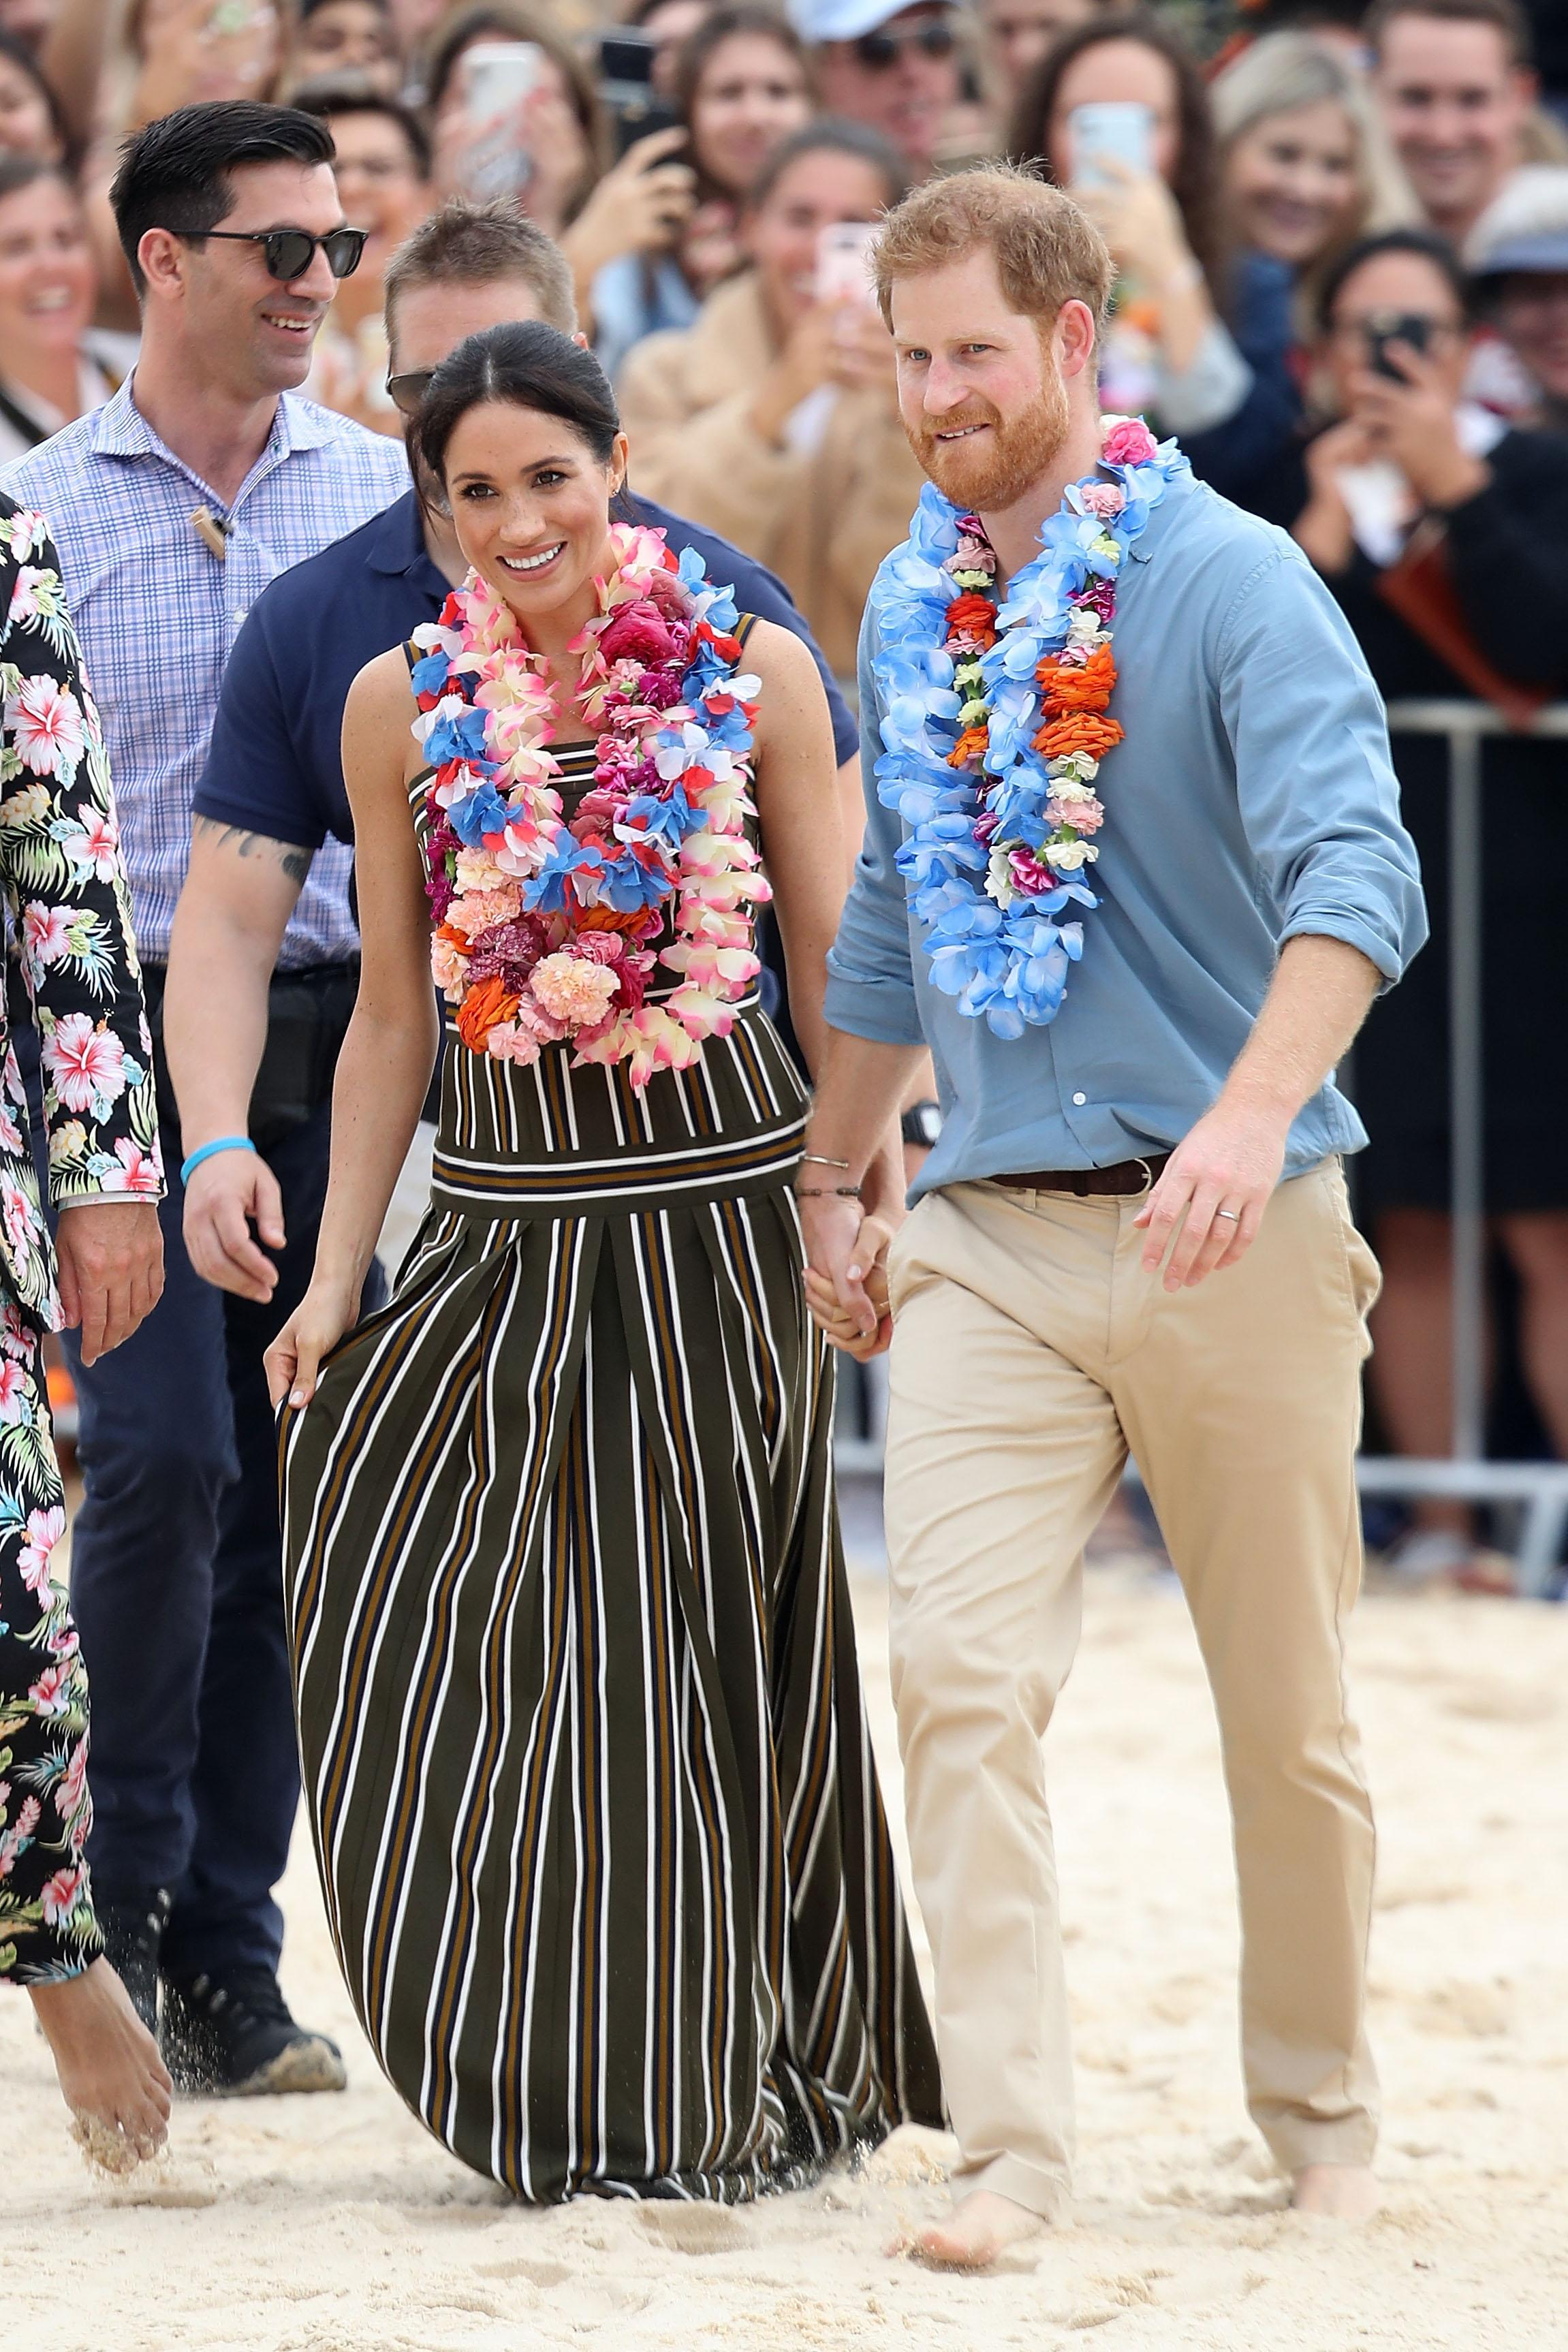 Meghan Markle and Prince Harry visited Sydney's Bondi Beach on Friday and took off their shoes